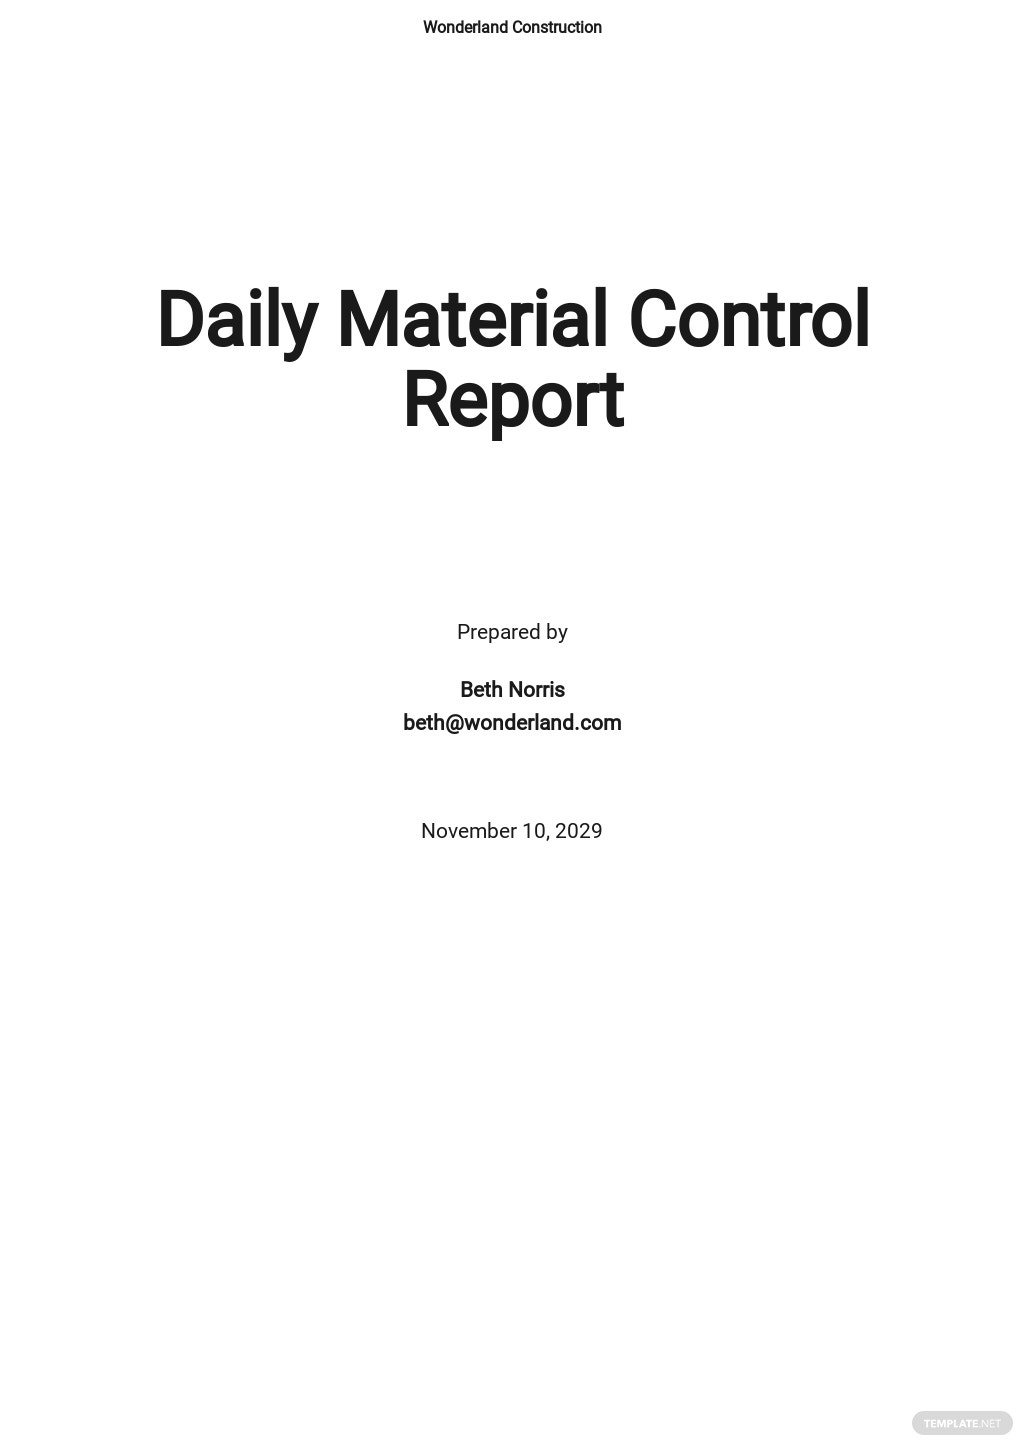 Free Daily Material Control Report Template.jpe